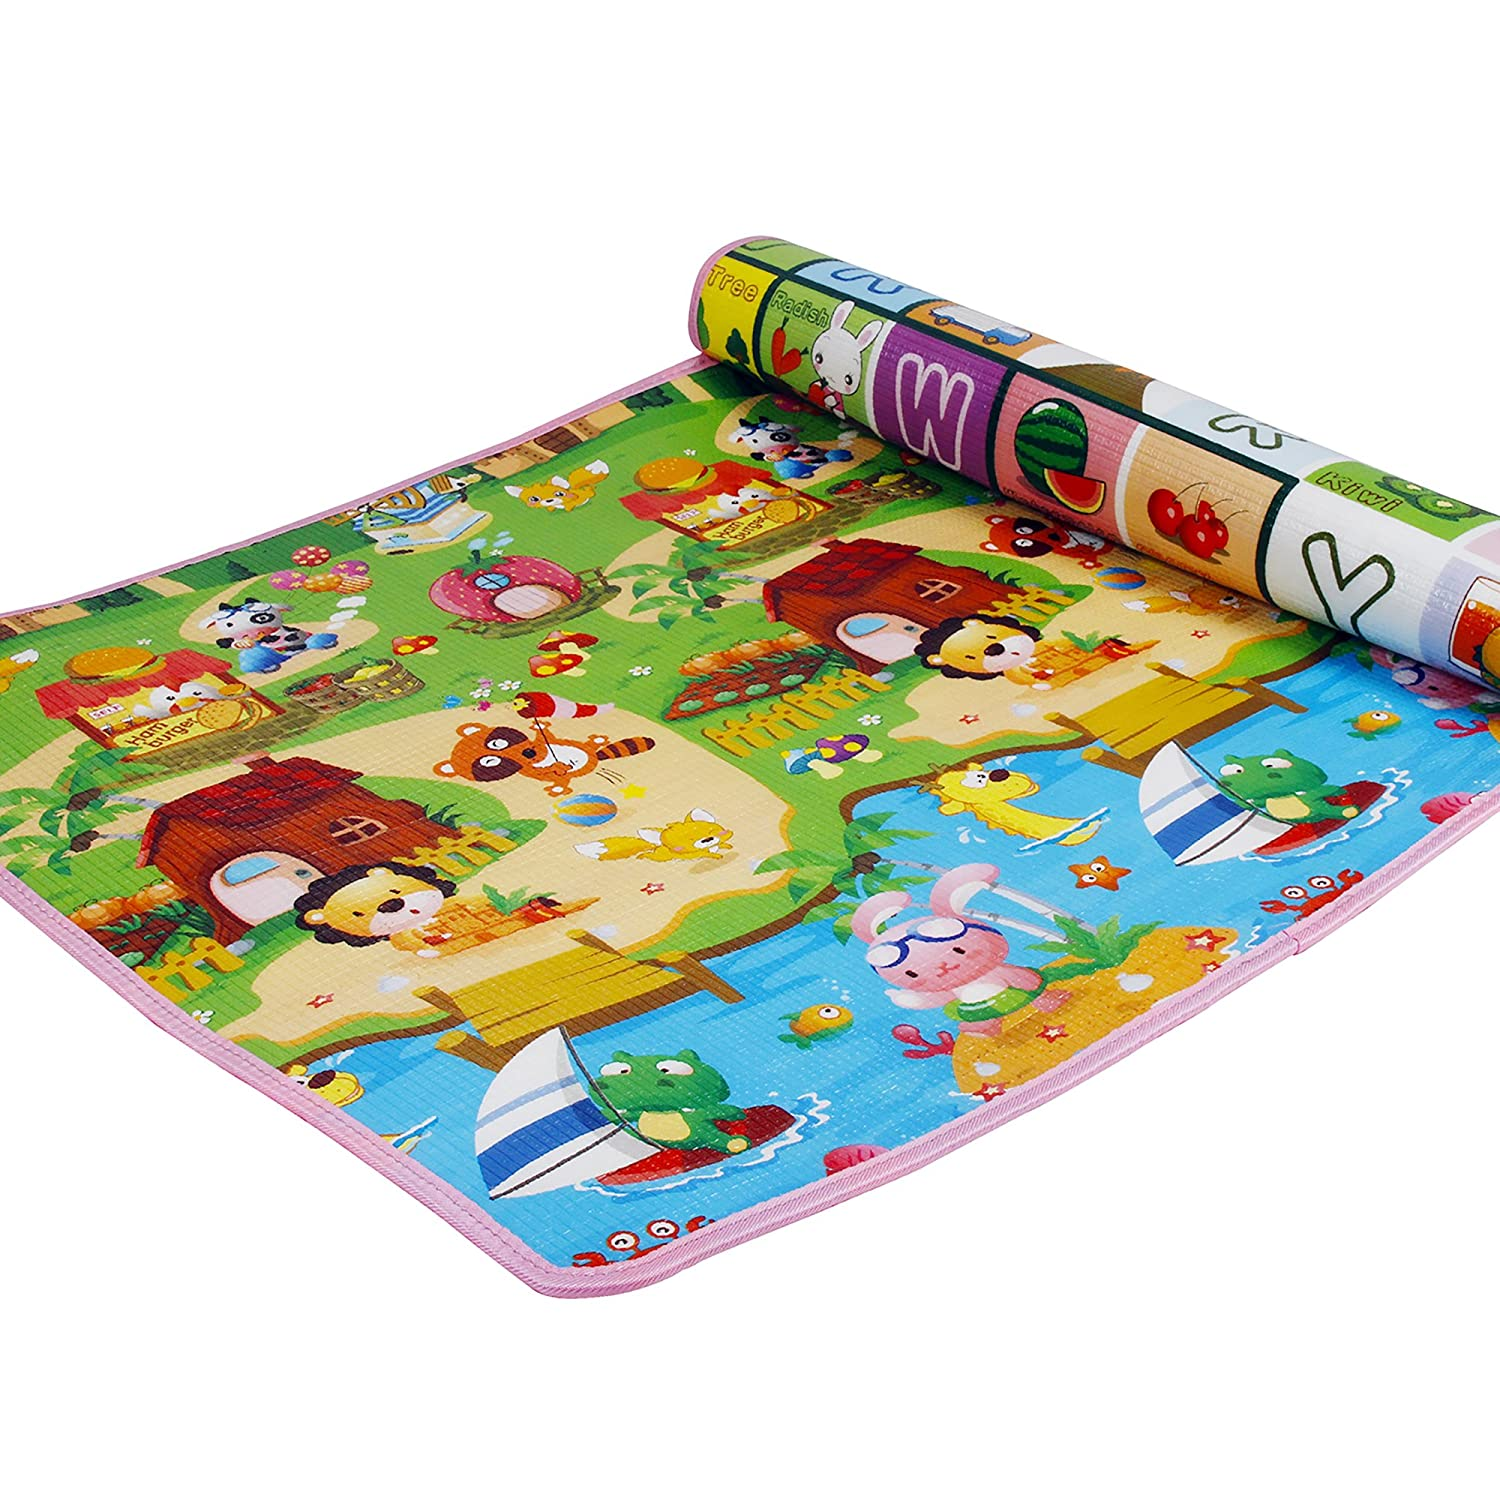 SimpVale Double-Sided Mats Foam Waterproof Baby Crawling Thickening Mat Drawing Alphabet Figures Animals Pattern 180cm x 120cm x1cm 70.86inch x 47.24inch x 0.4inch